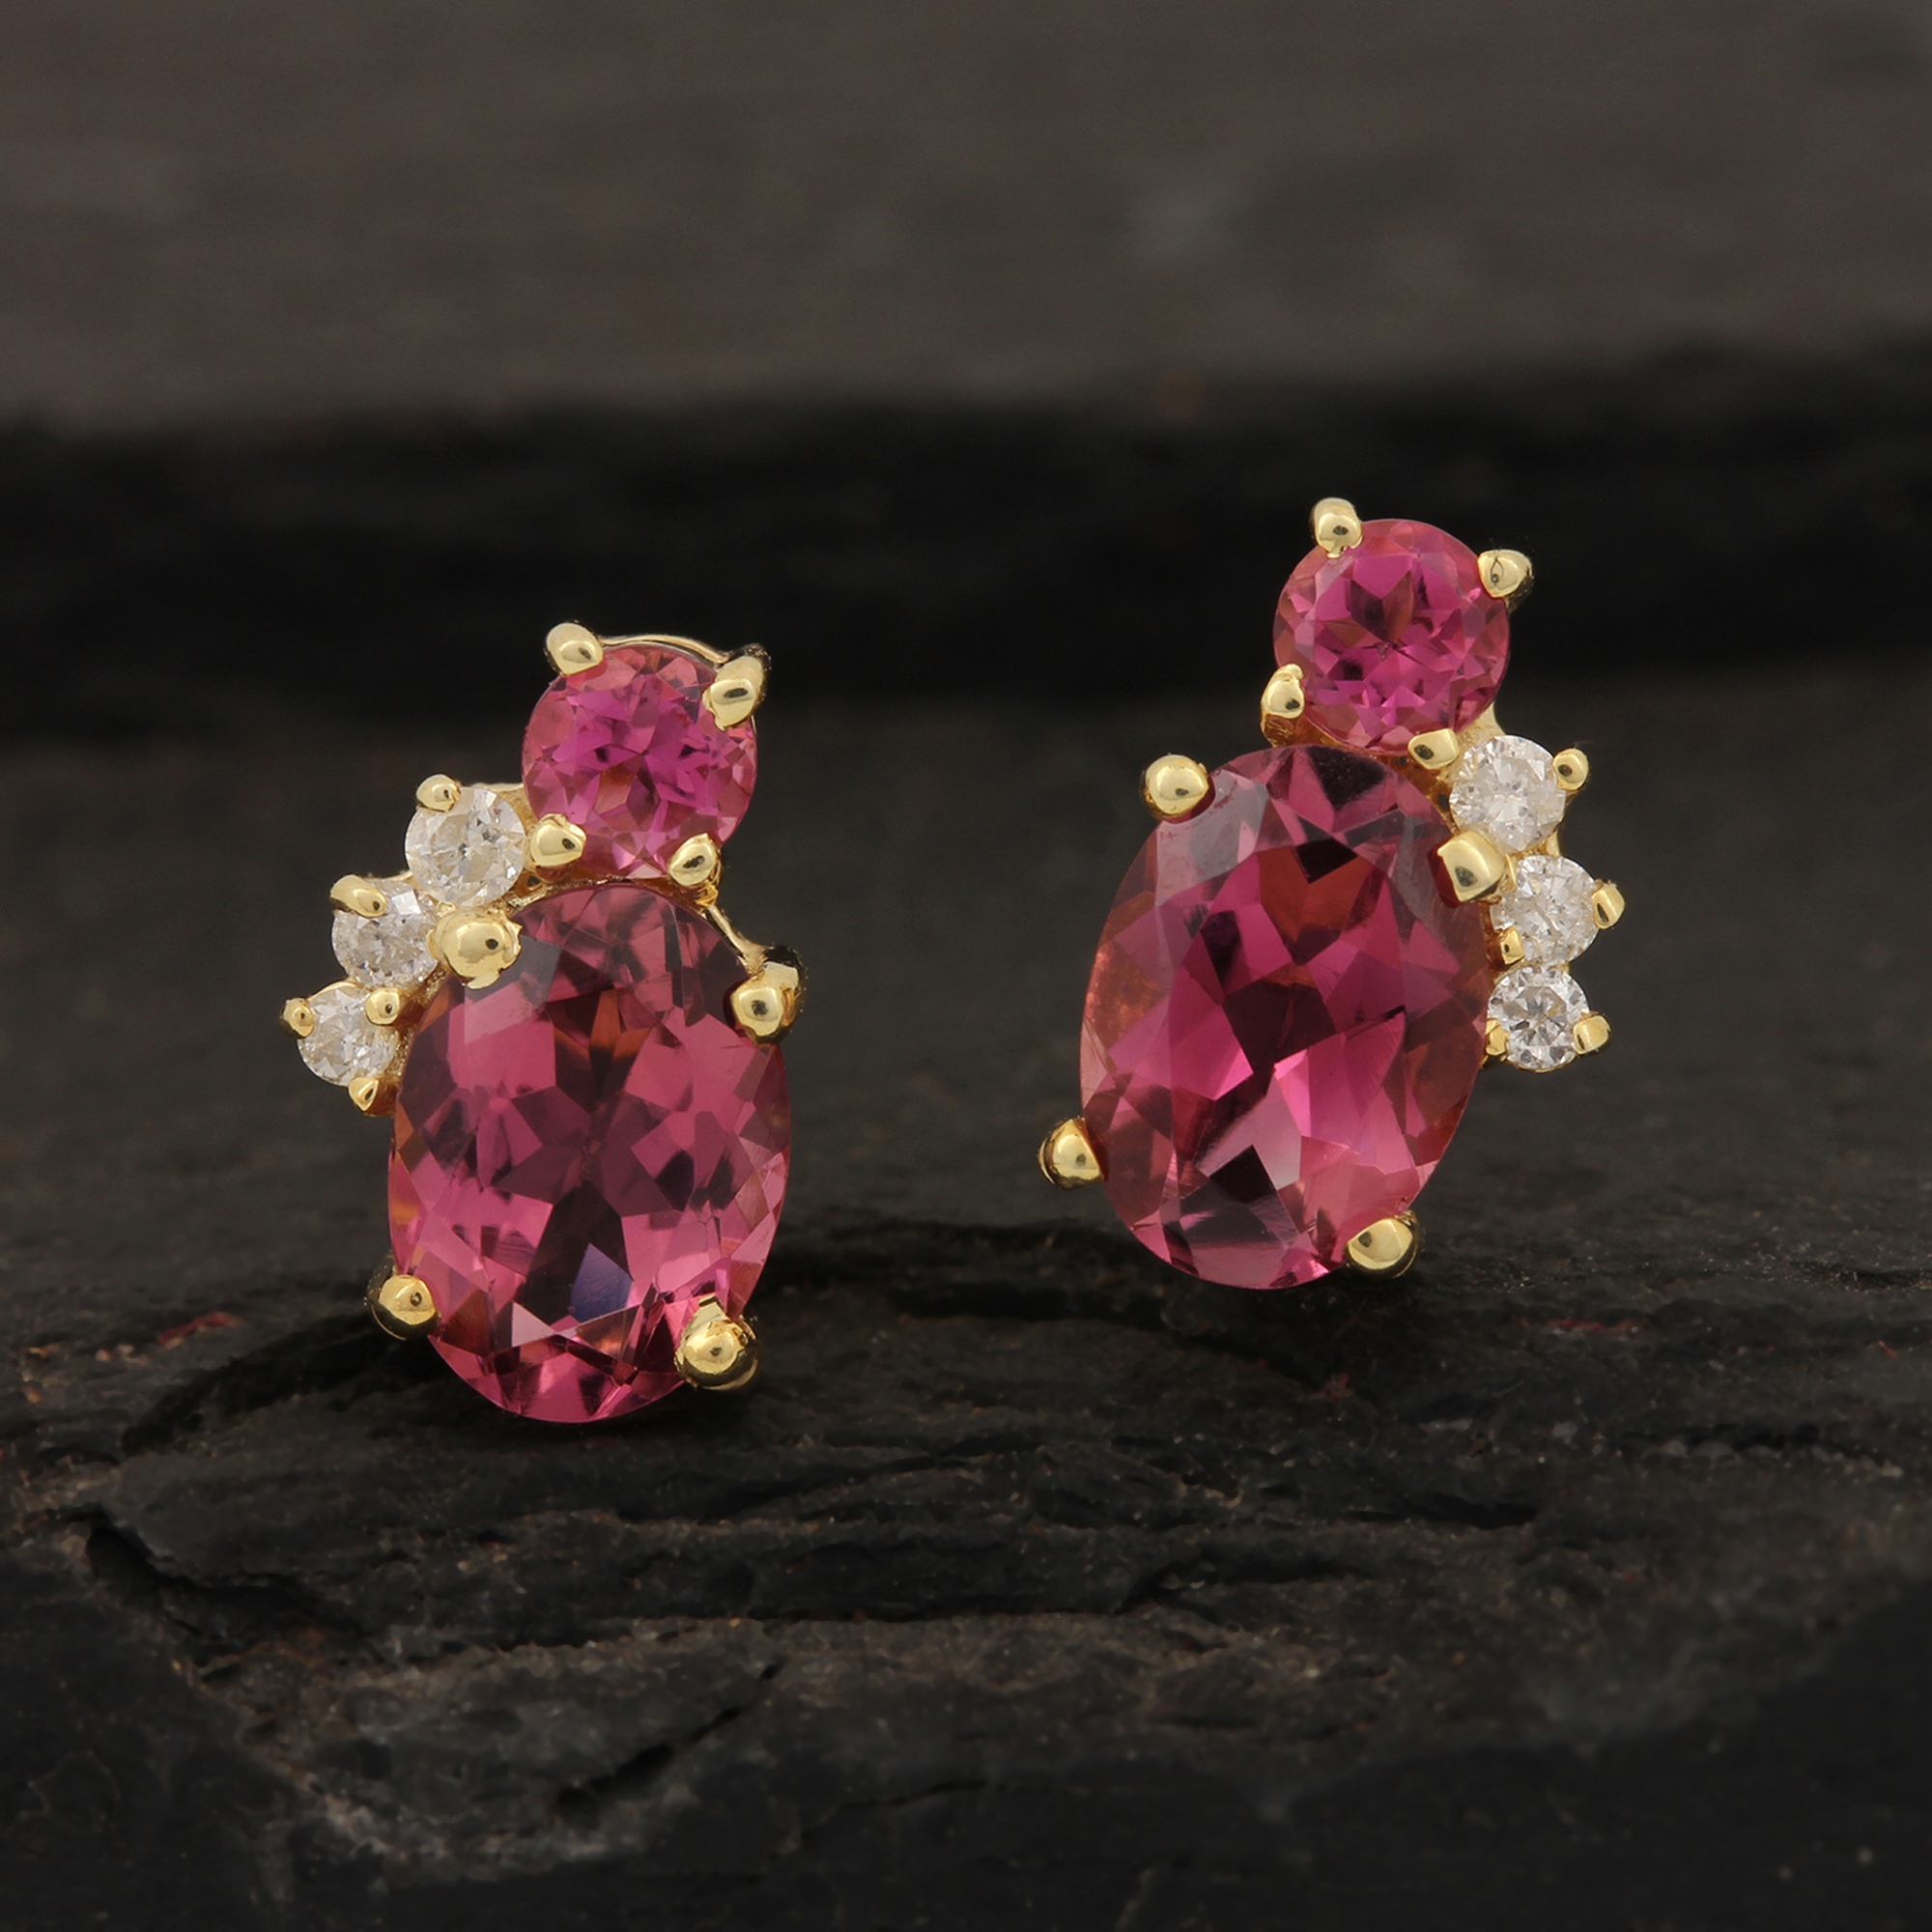 Pink Tourmaline Gemstone 14k Solid Gold Stud Earrings Adorned With Diamond